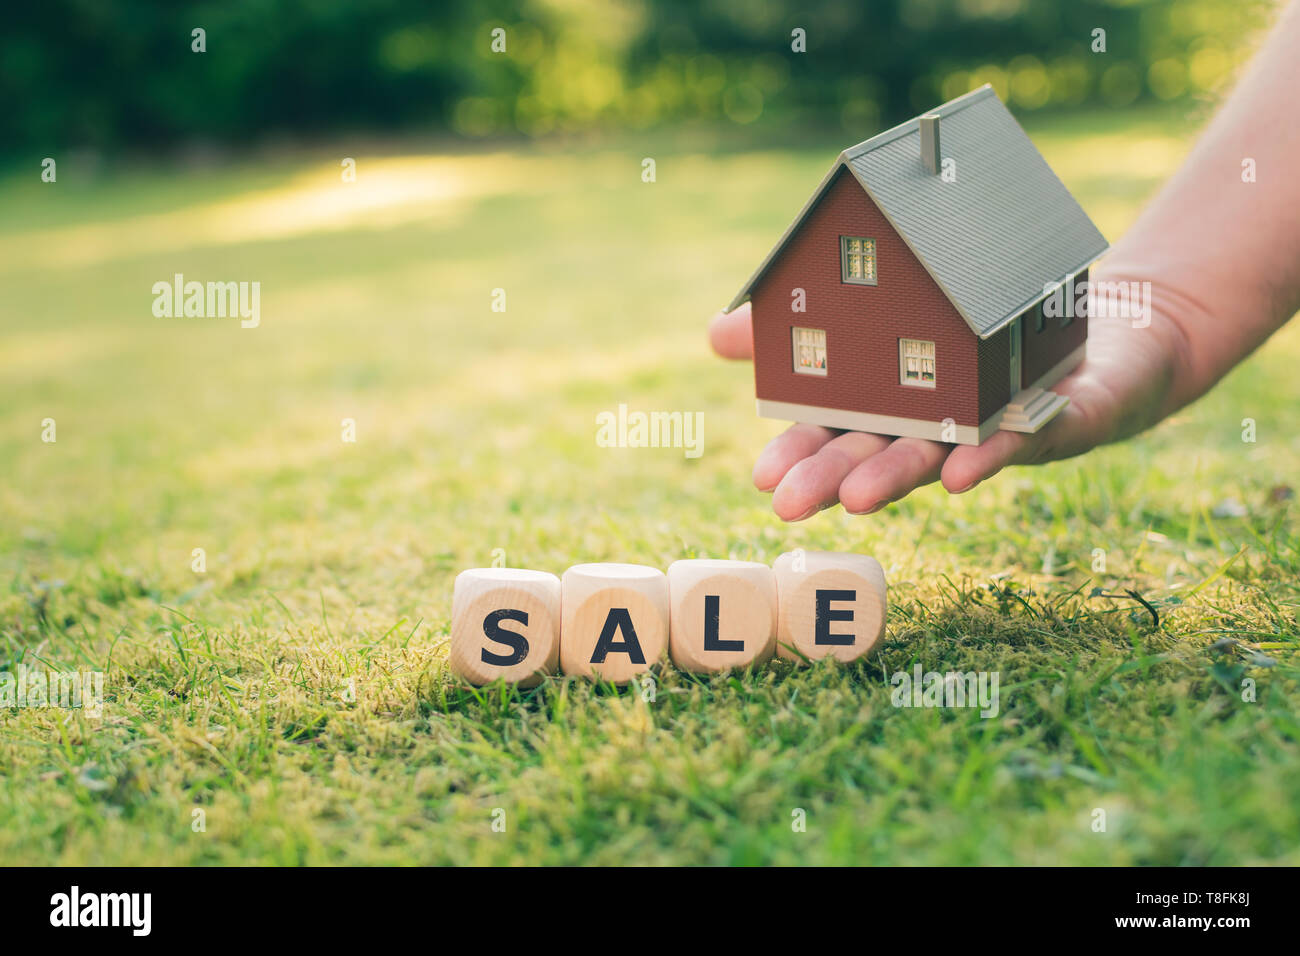 Concept for a house on sale. A hand holds a model house above a meadow. Dice form the word 'sale'. - Stock Image